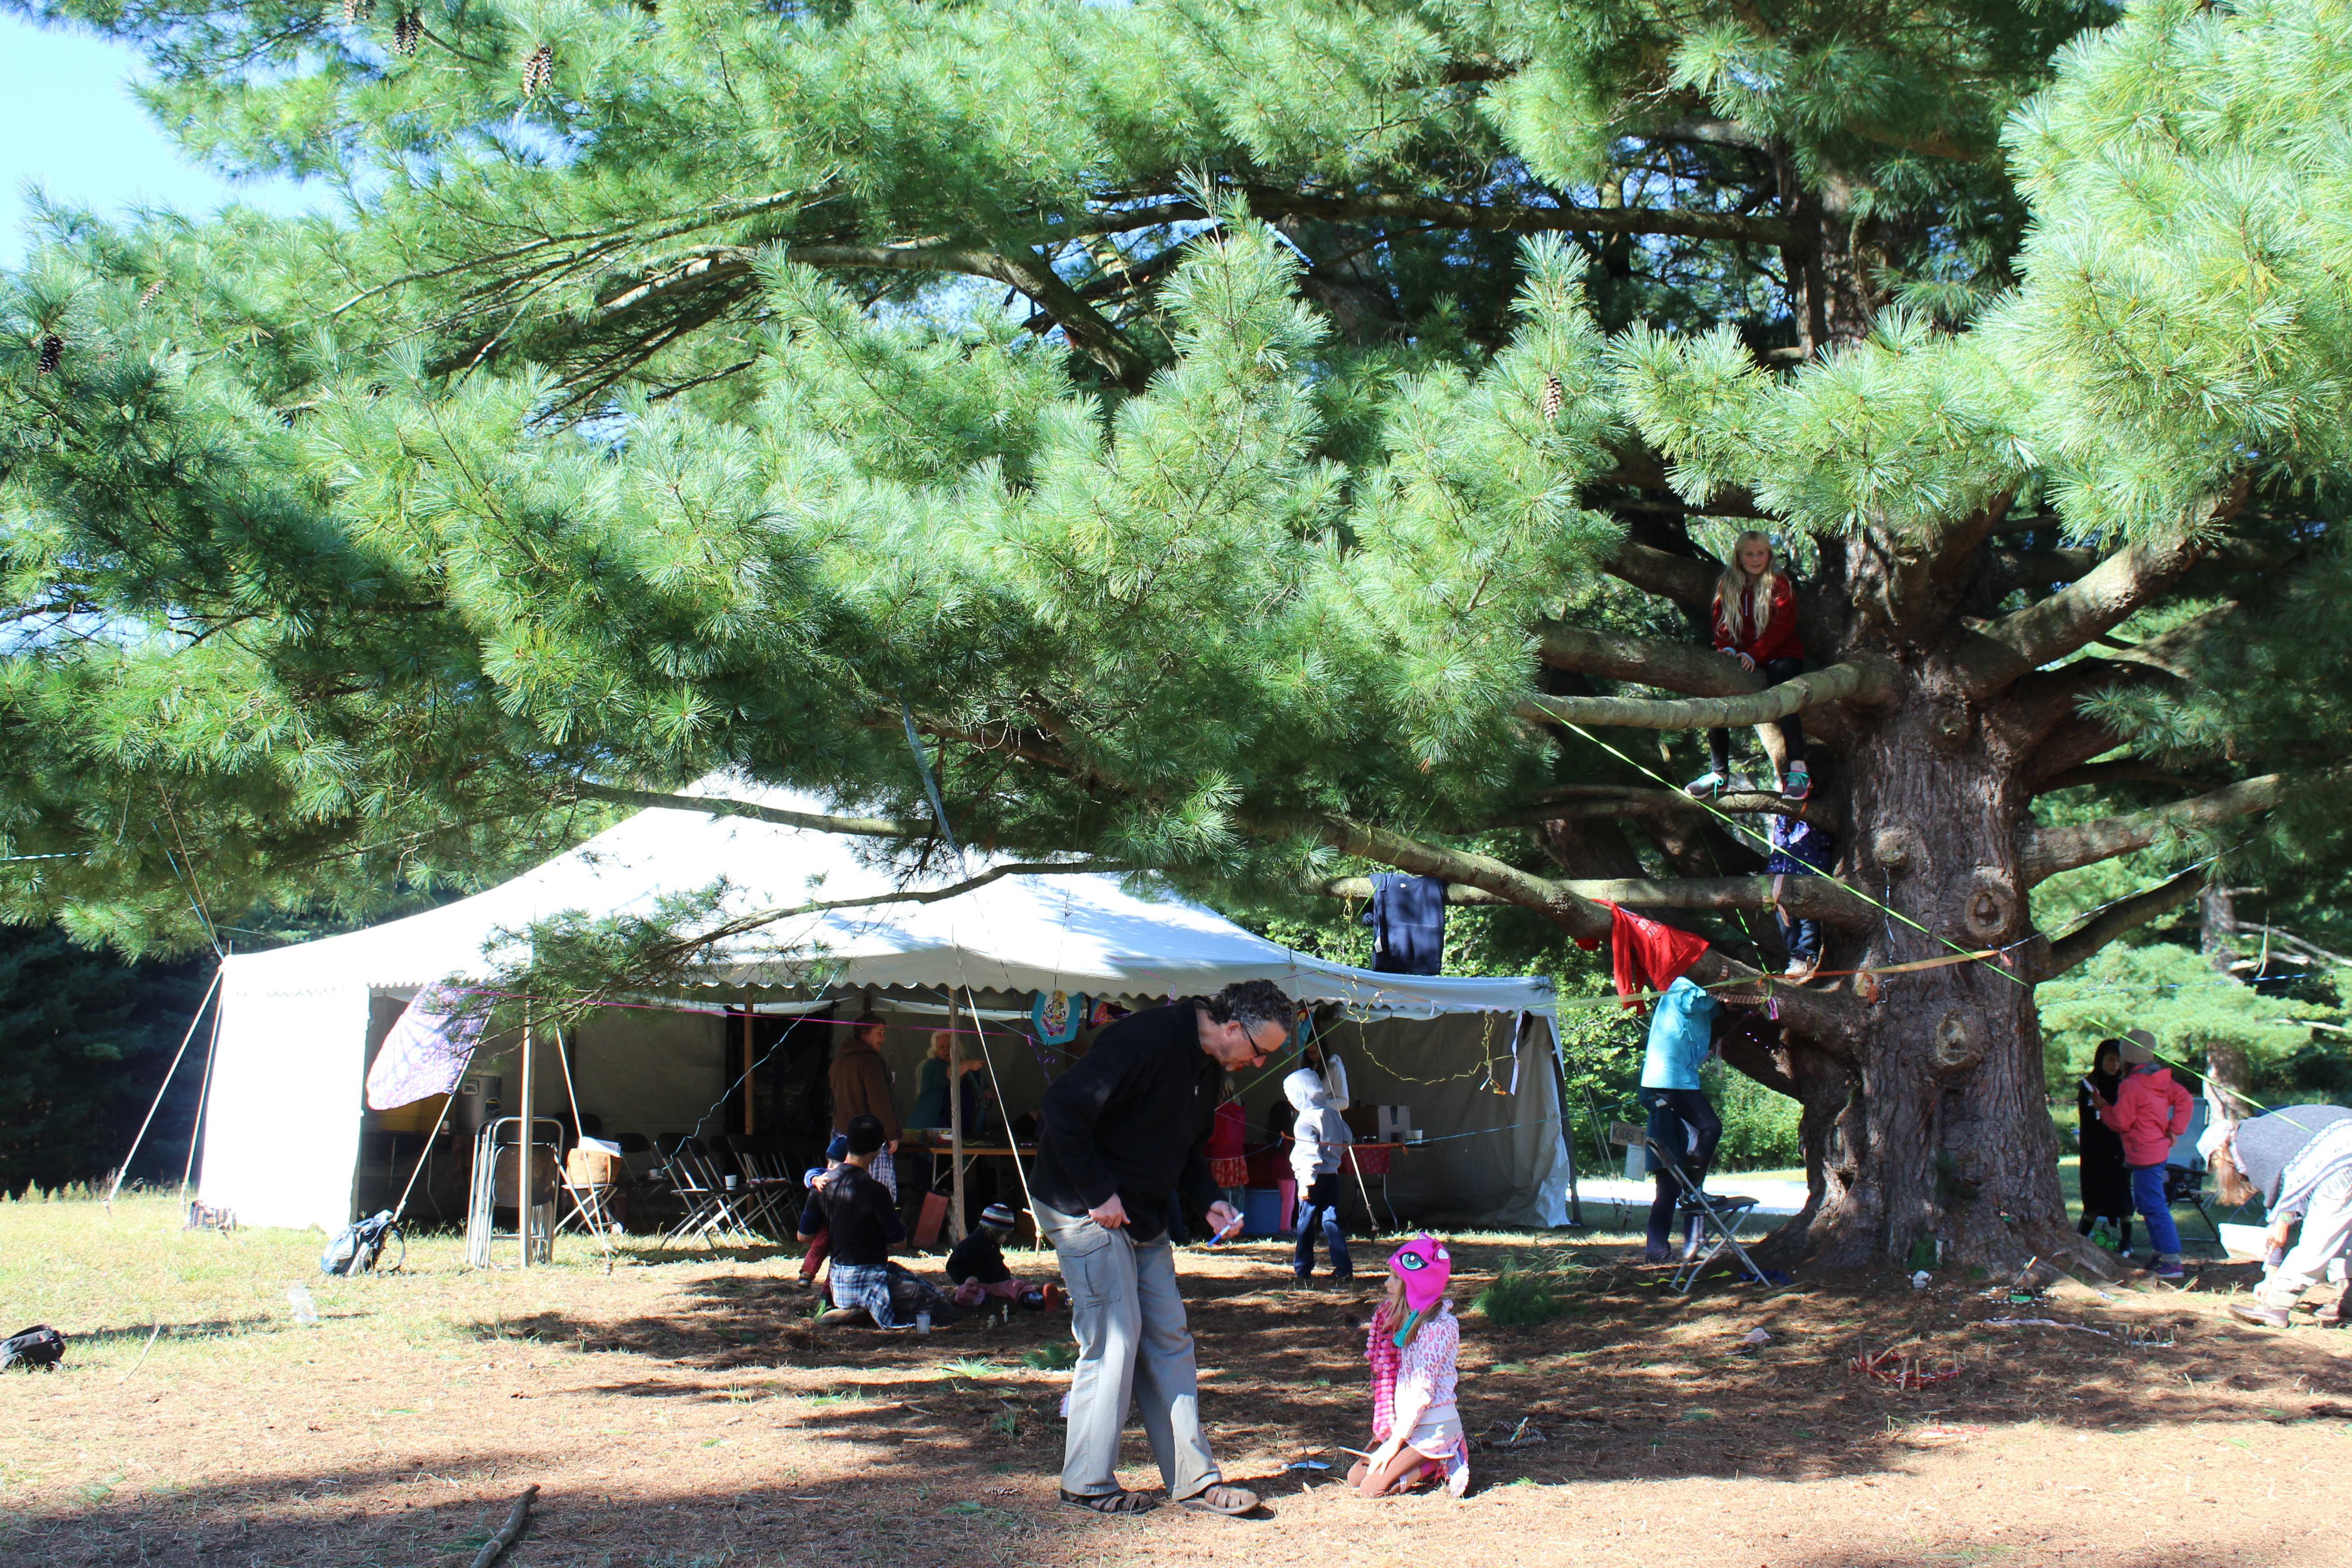 Dad child tent and tree USE & Great Lakes Herb Faire | Small House Big Sky Homestead